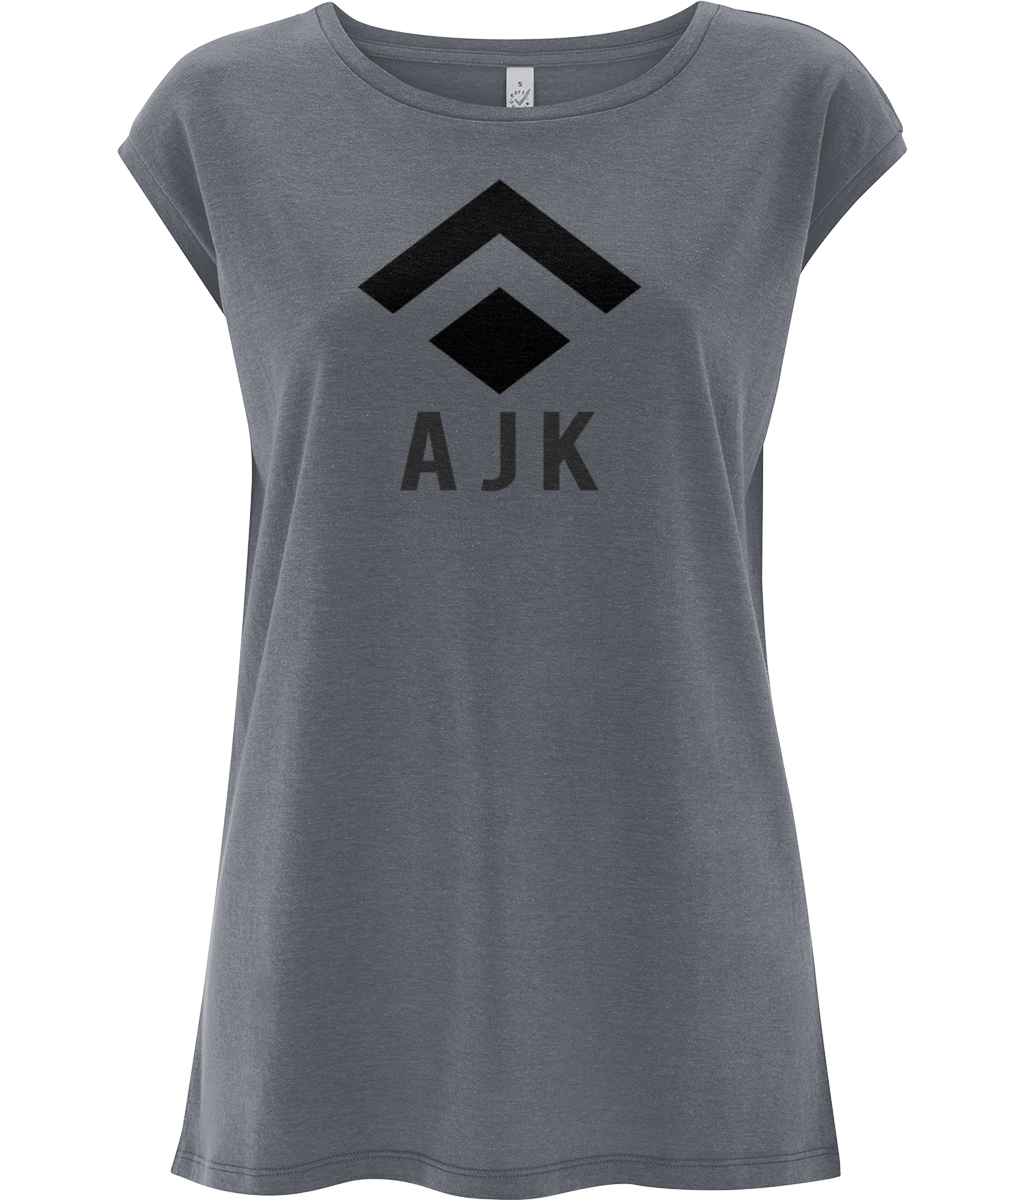 Ladies Sleeveless T-Shirt